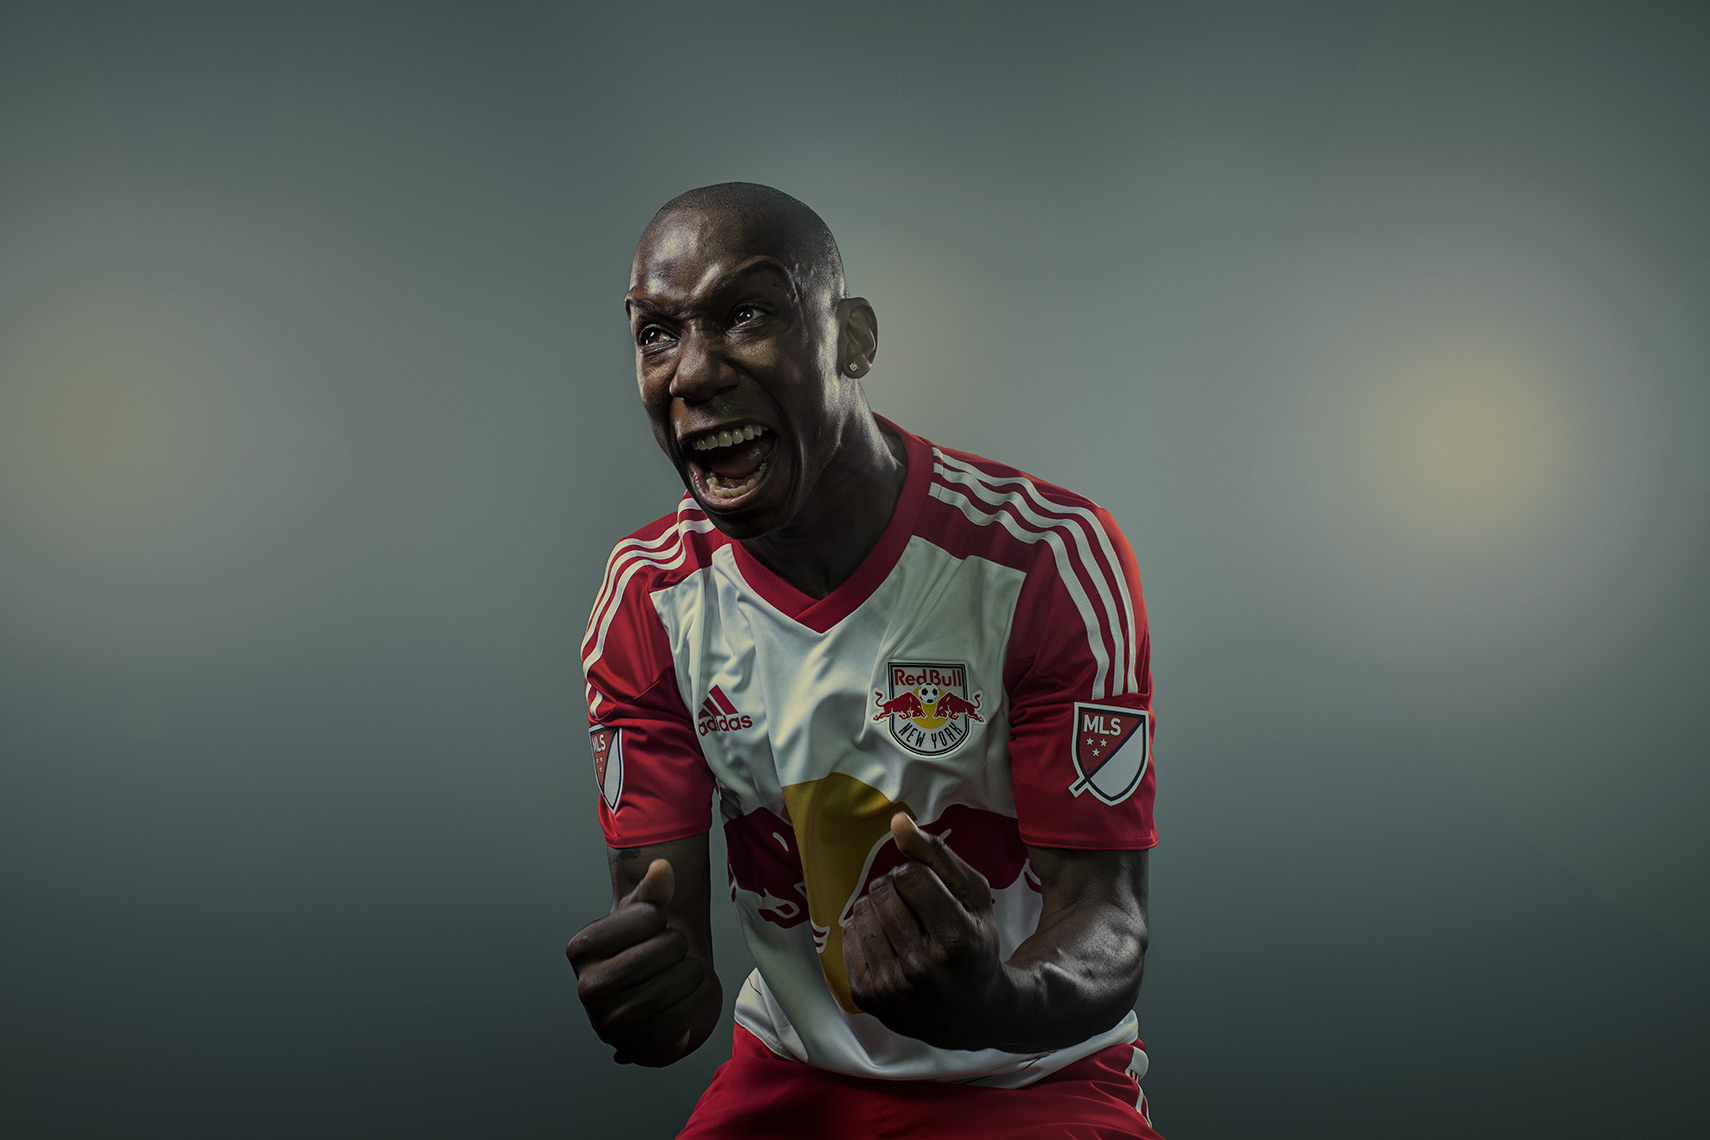 KC Armstrong_Bradley_Wright_Phillips